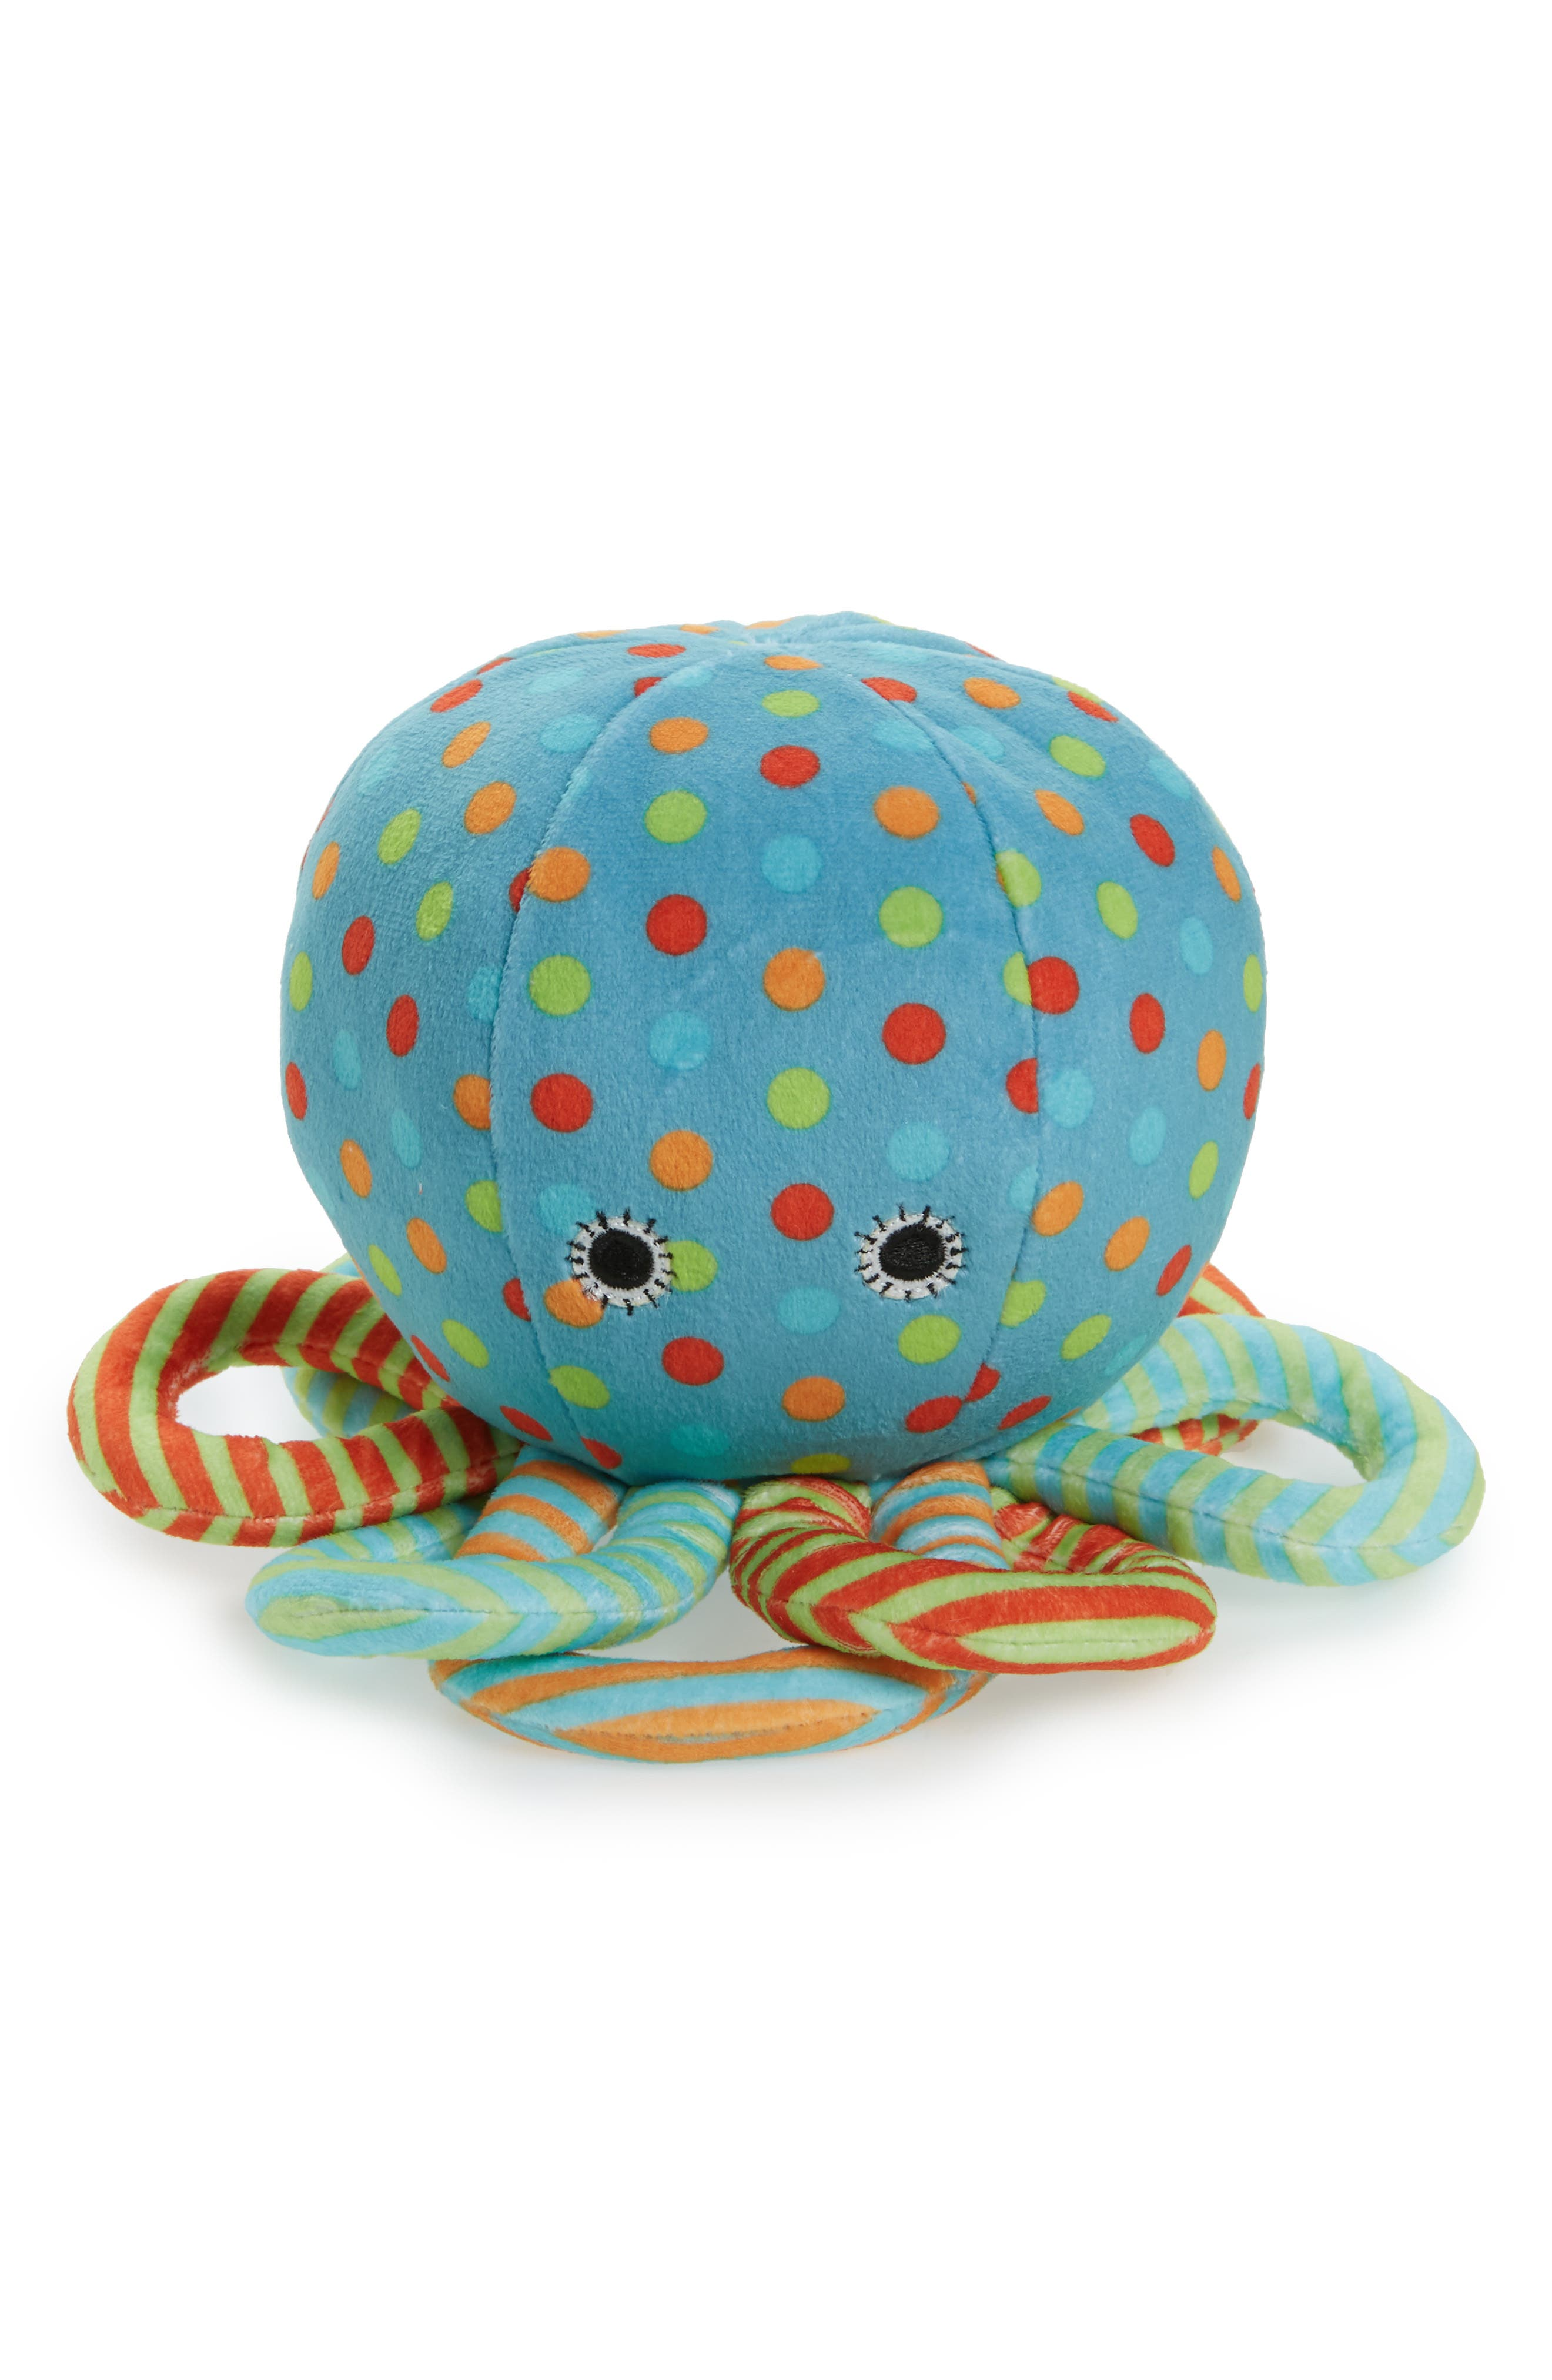 Octopus Chime,                         Main,                         color, Blue Multi